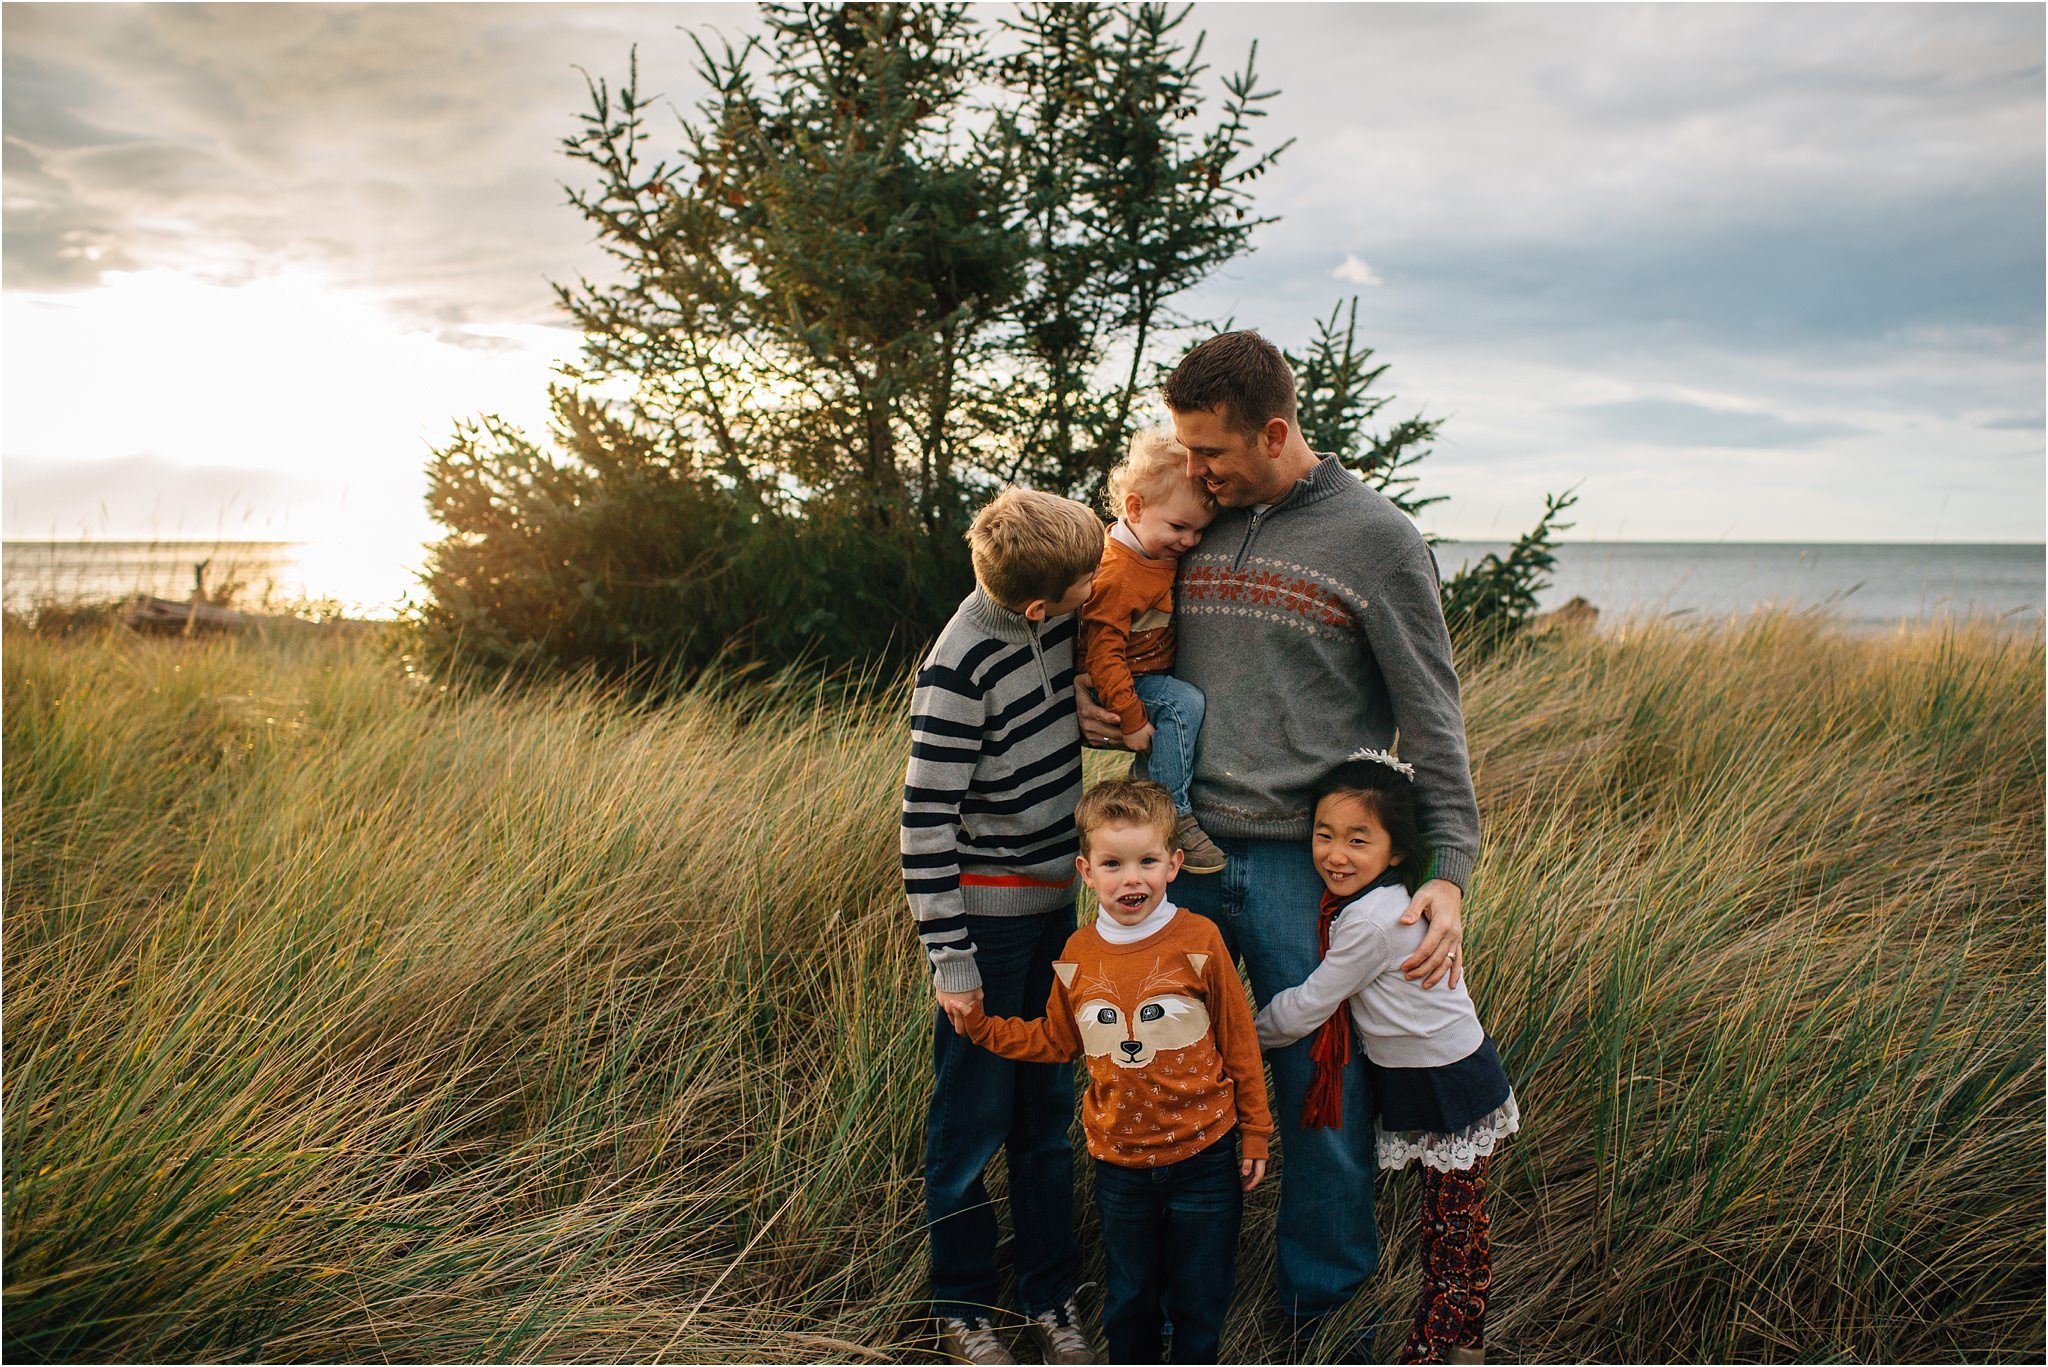 Whidbey-Island-Family-Photographer-Kara-Chappell-Photography_0021.jpg